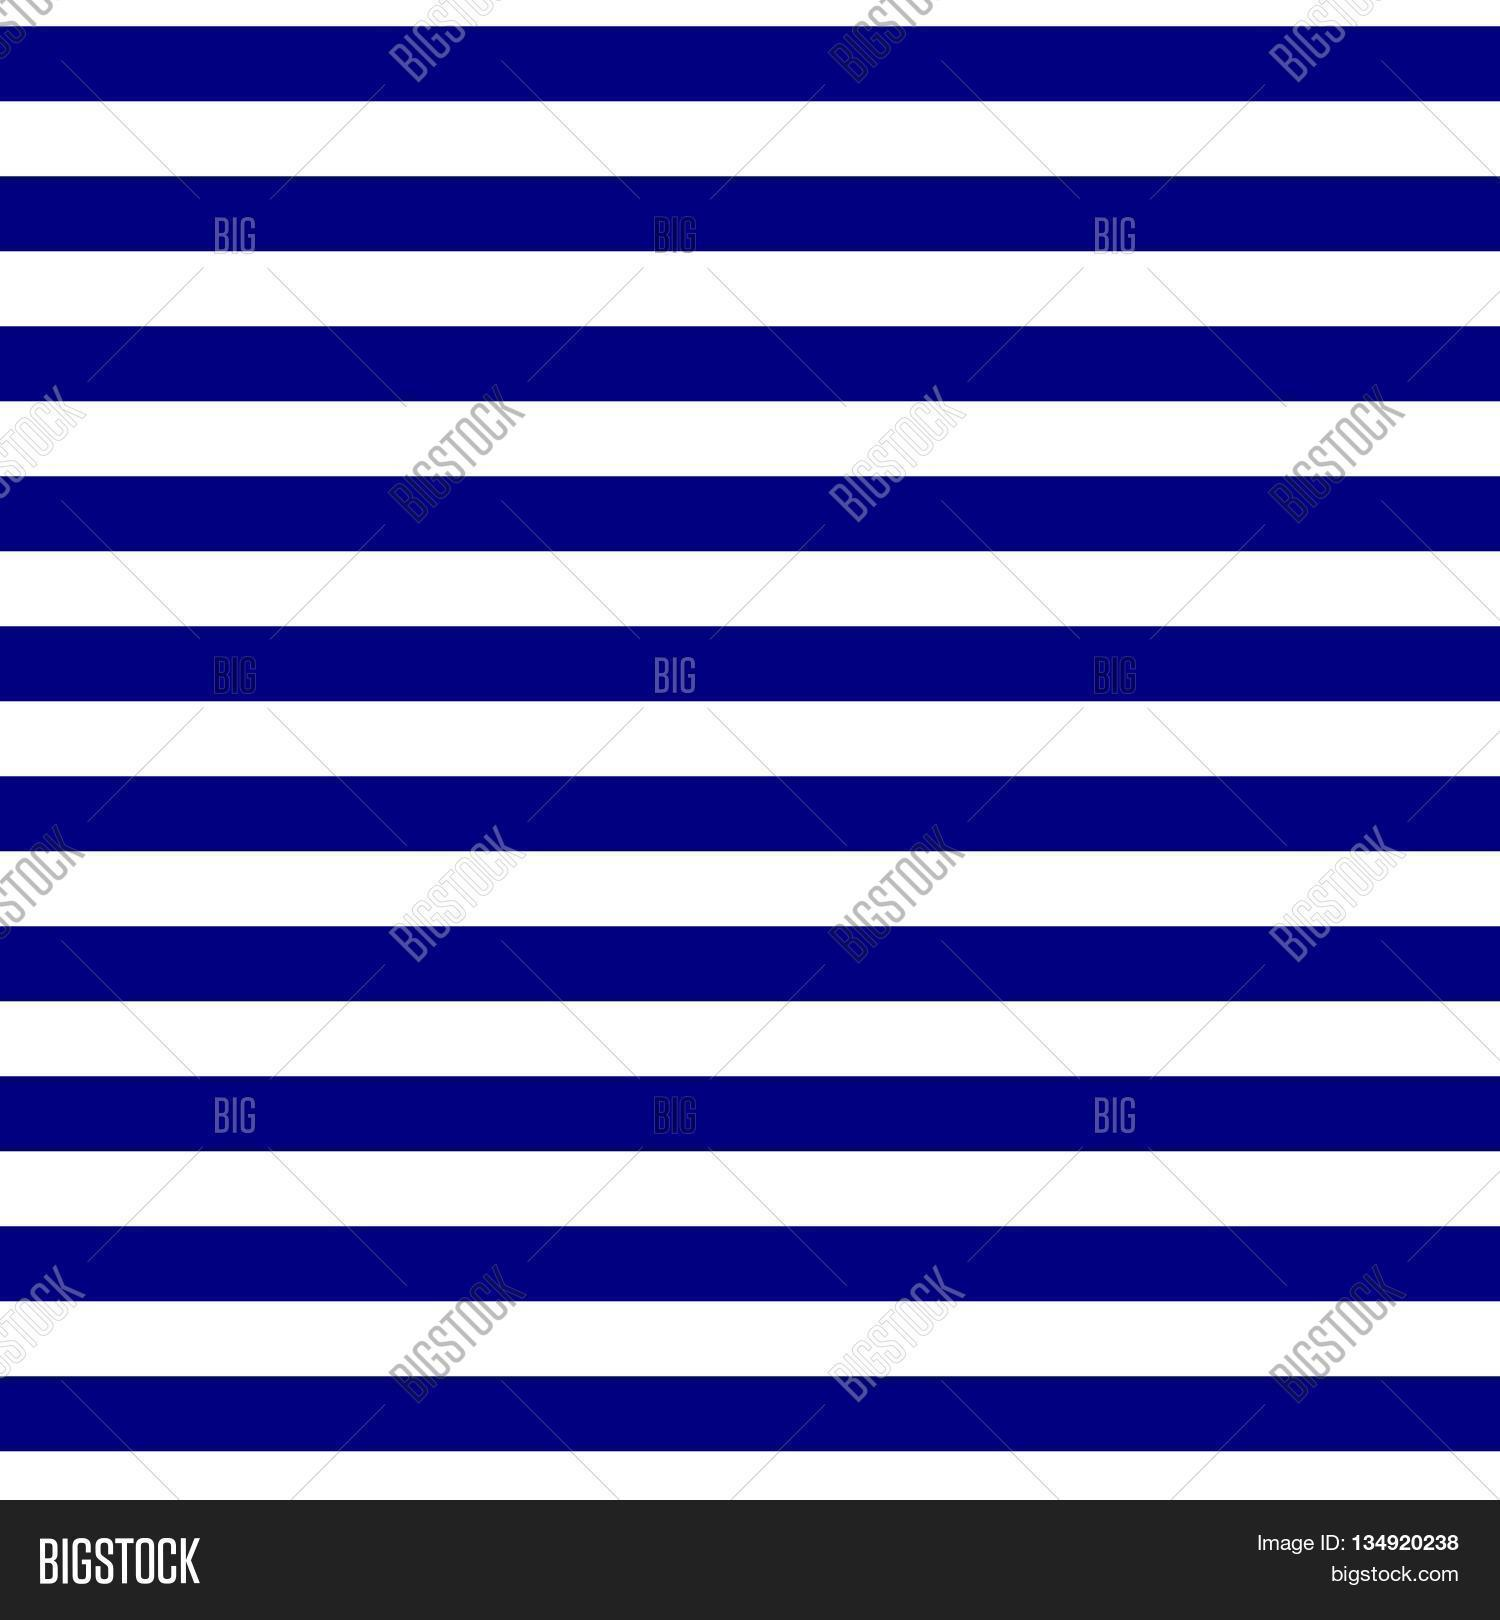 Seamless Geometric Horizontal Striped Pattern Abstract Background Blue And White Stripes Modern Navy